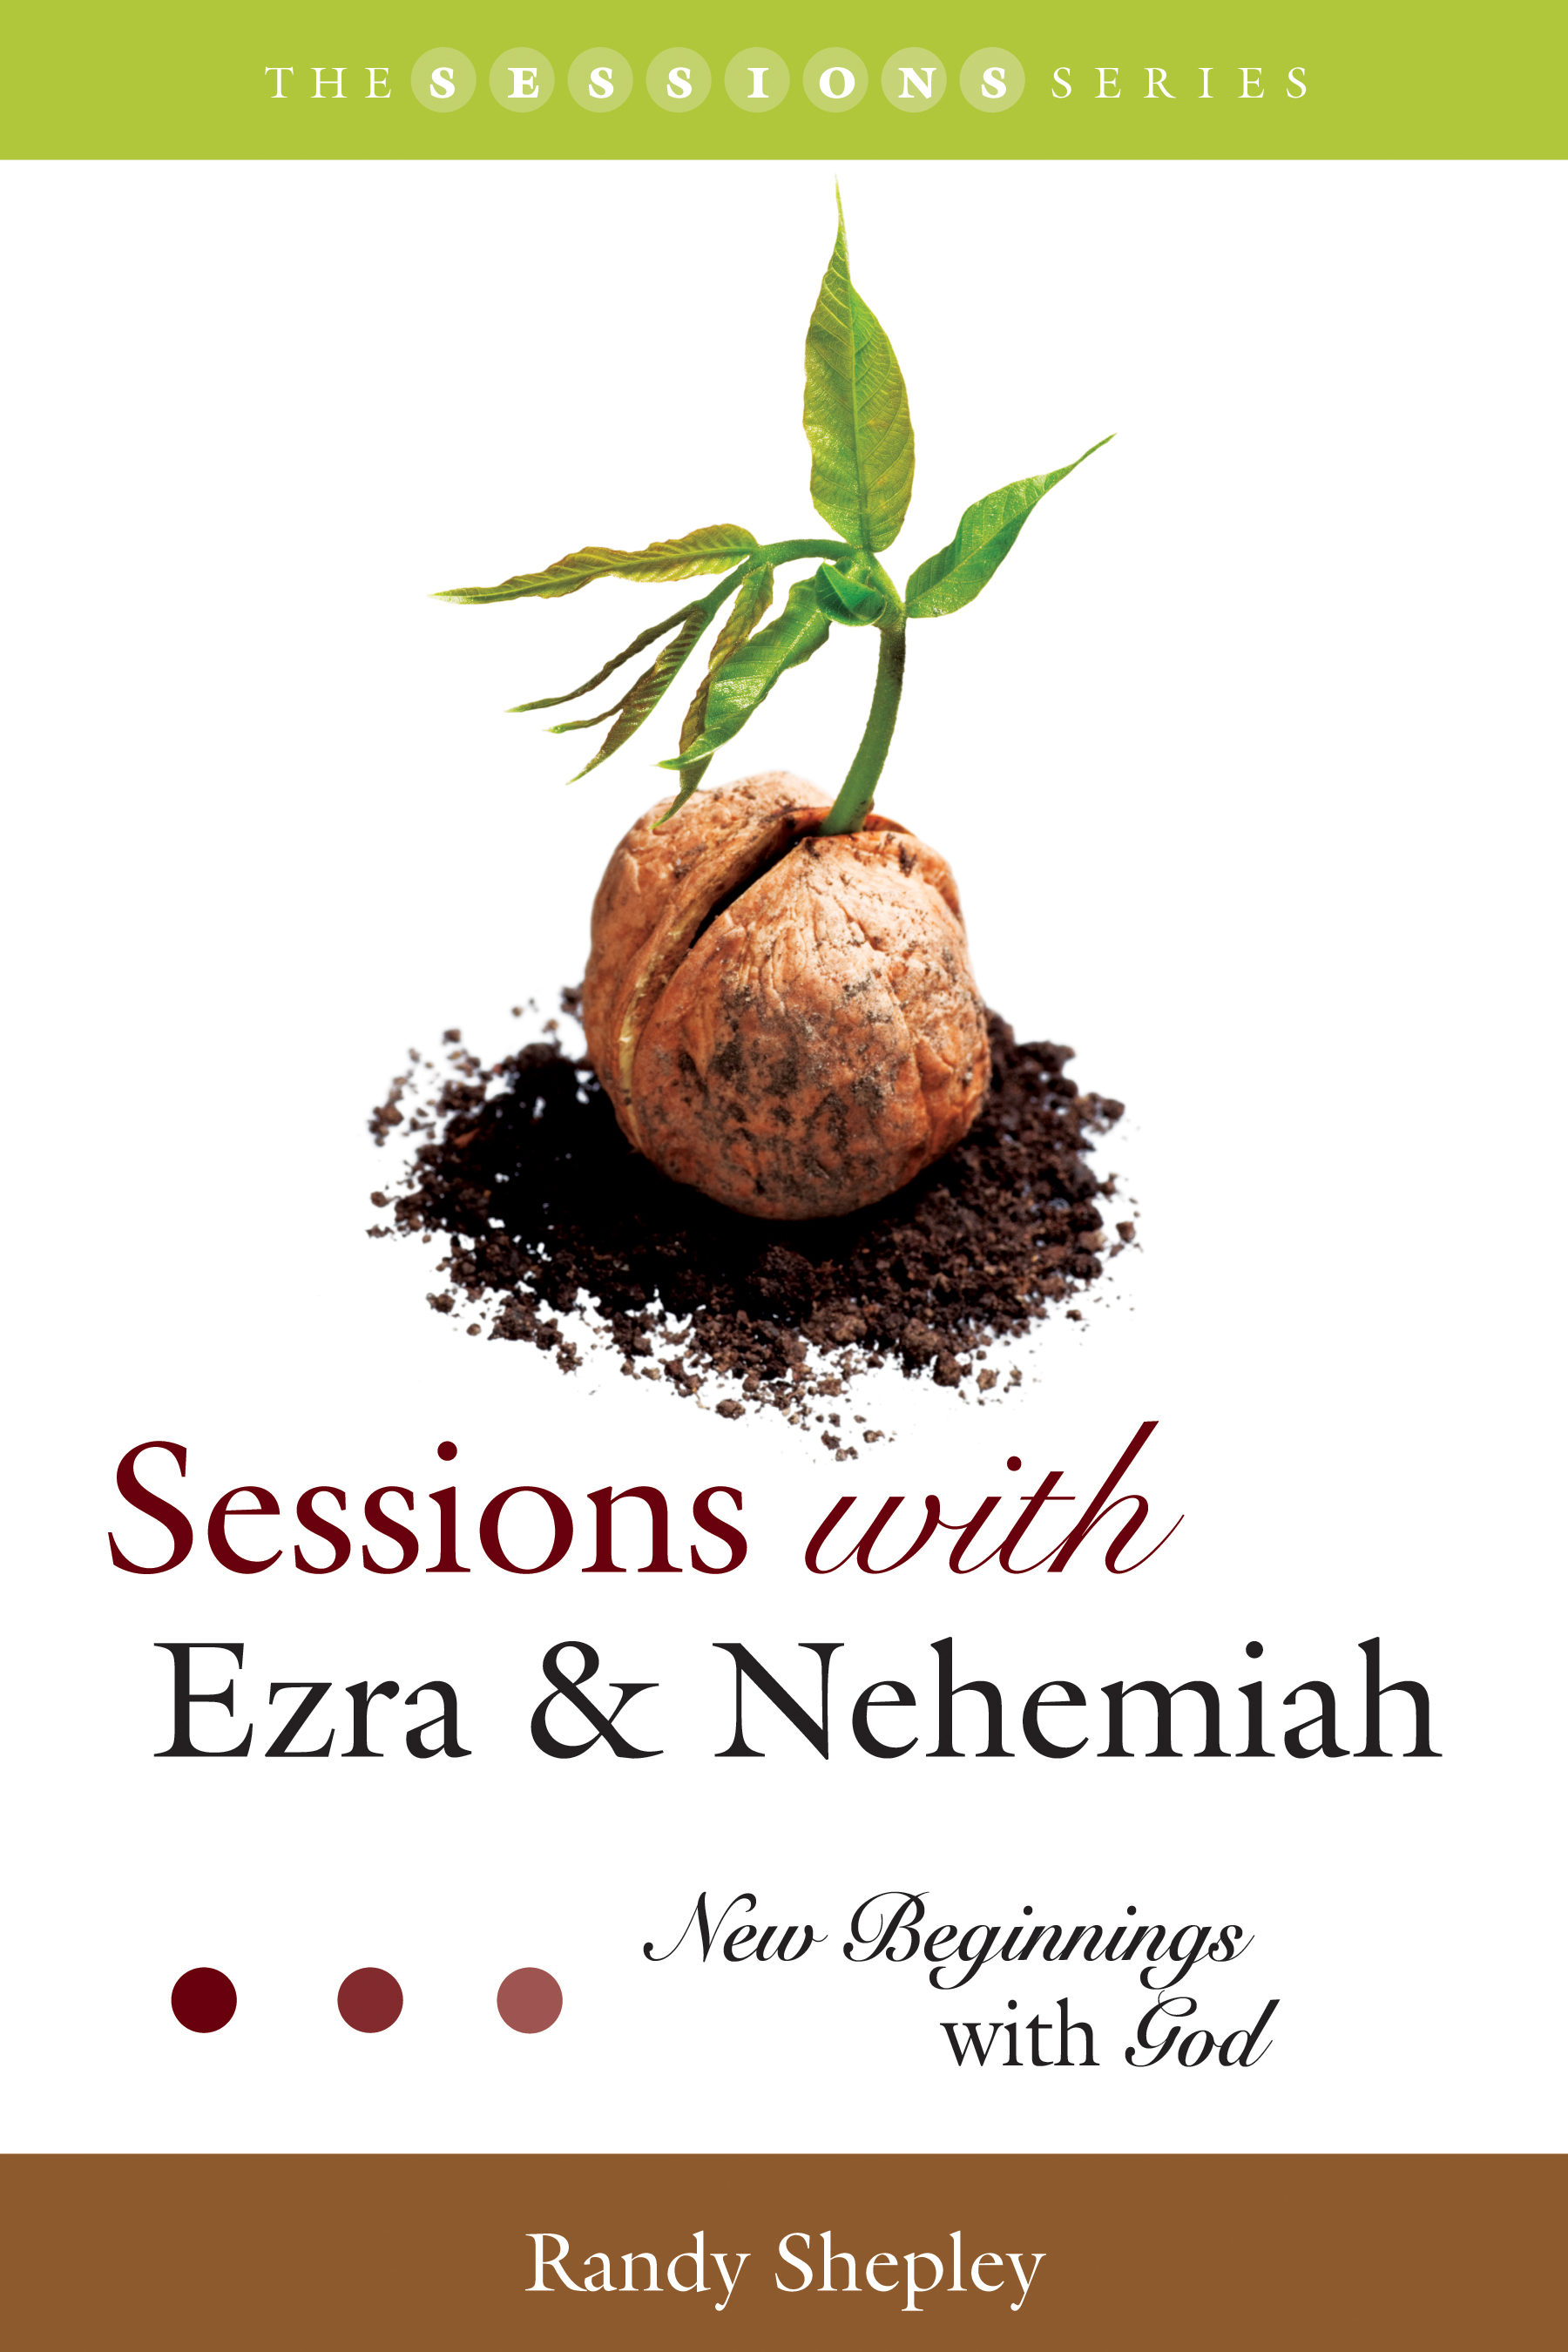 sessions_w_ezra&nehemiah